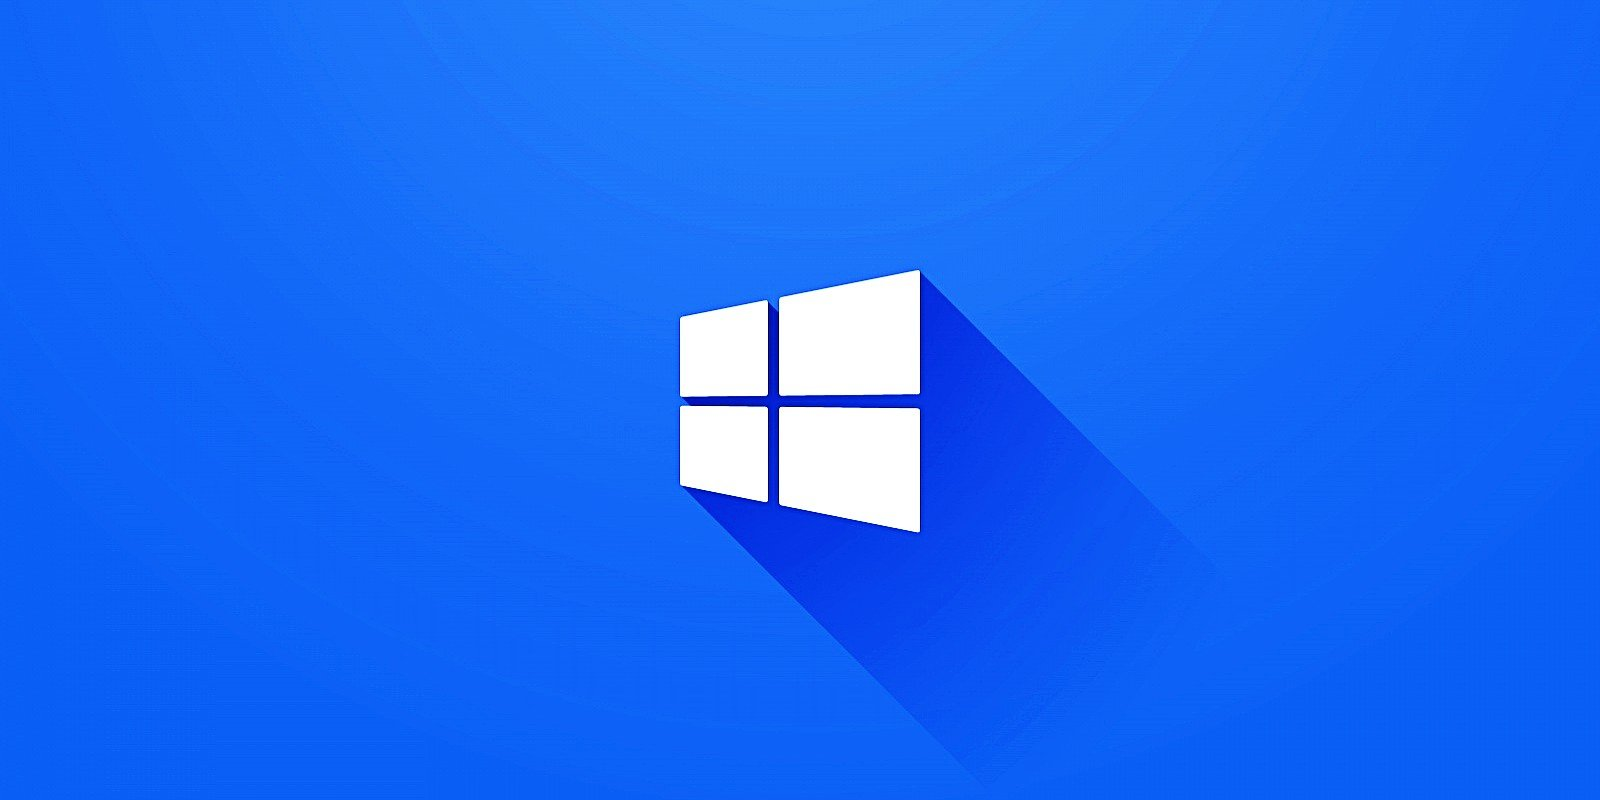 Windows 10 now warns when apps are configured to run at startup